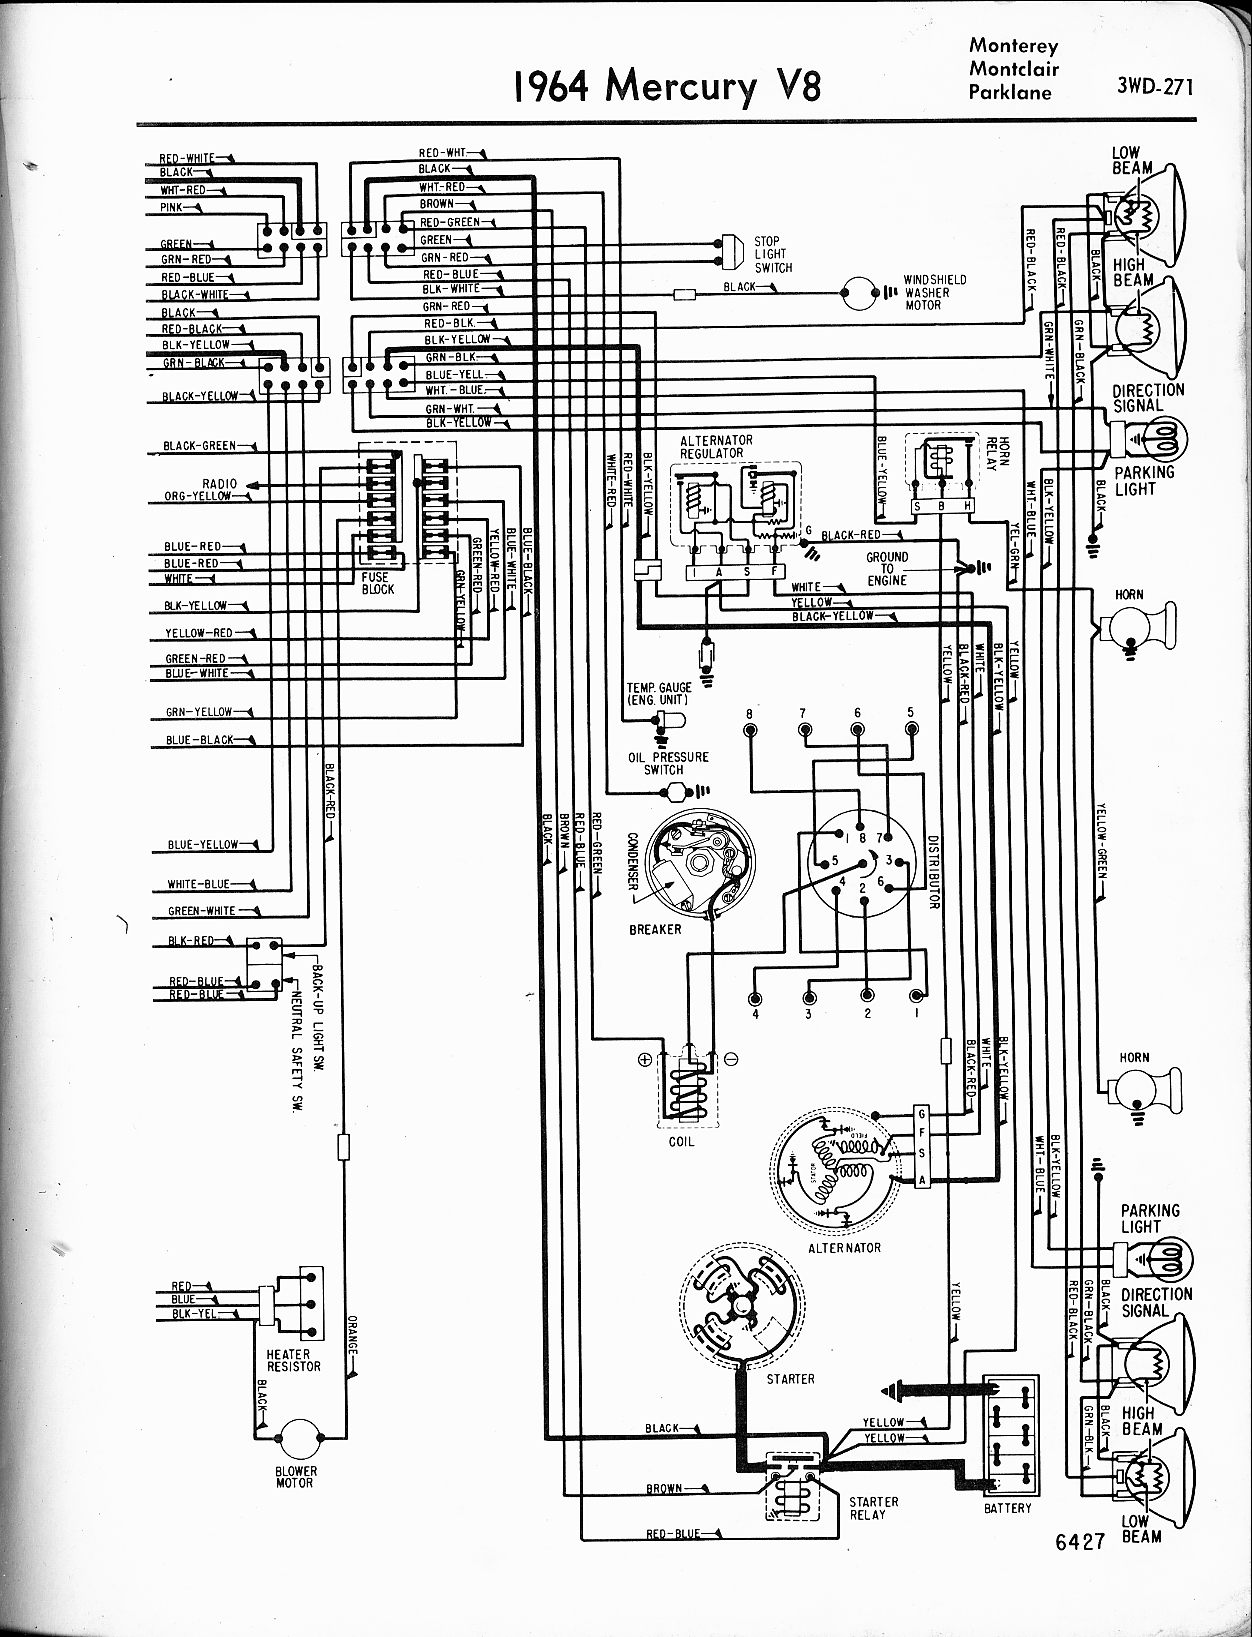 MWire5765 271 mercury wiring diagrams the old car manual project vs v8 wiring diagram at mr168.co